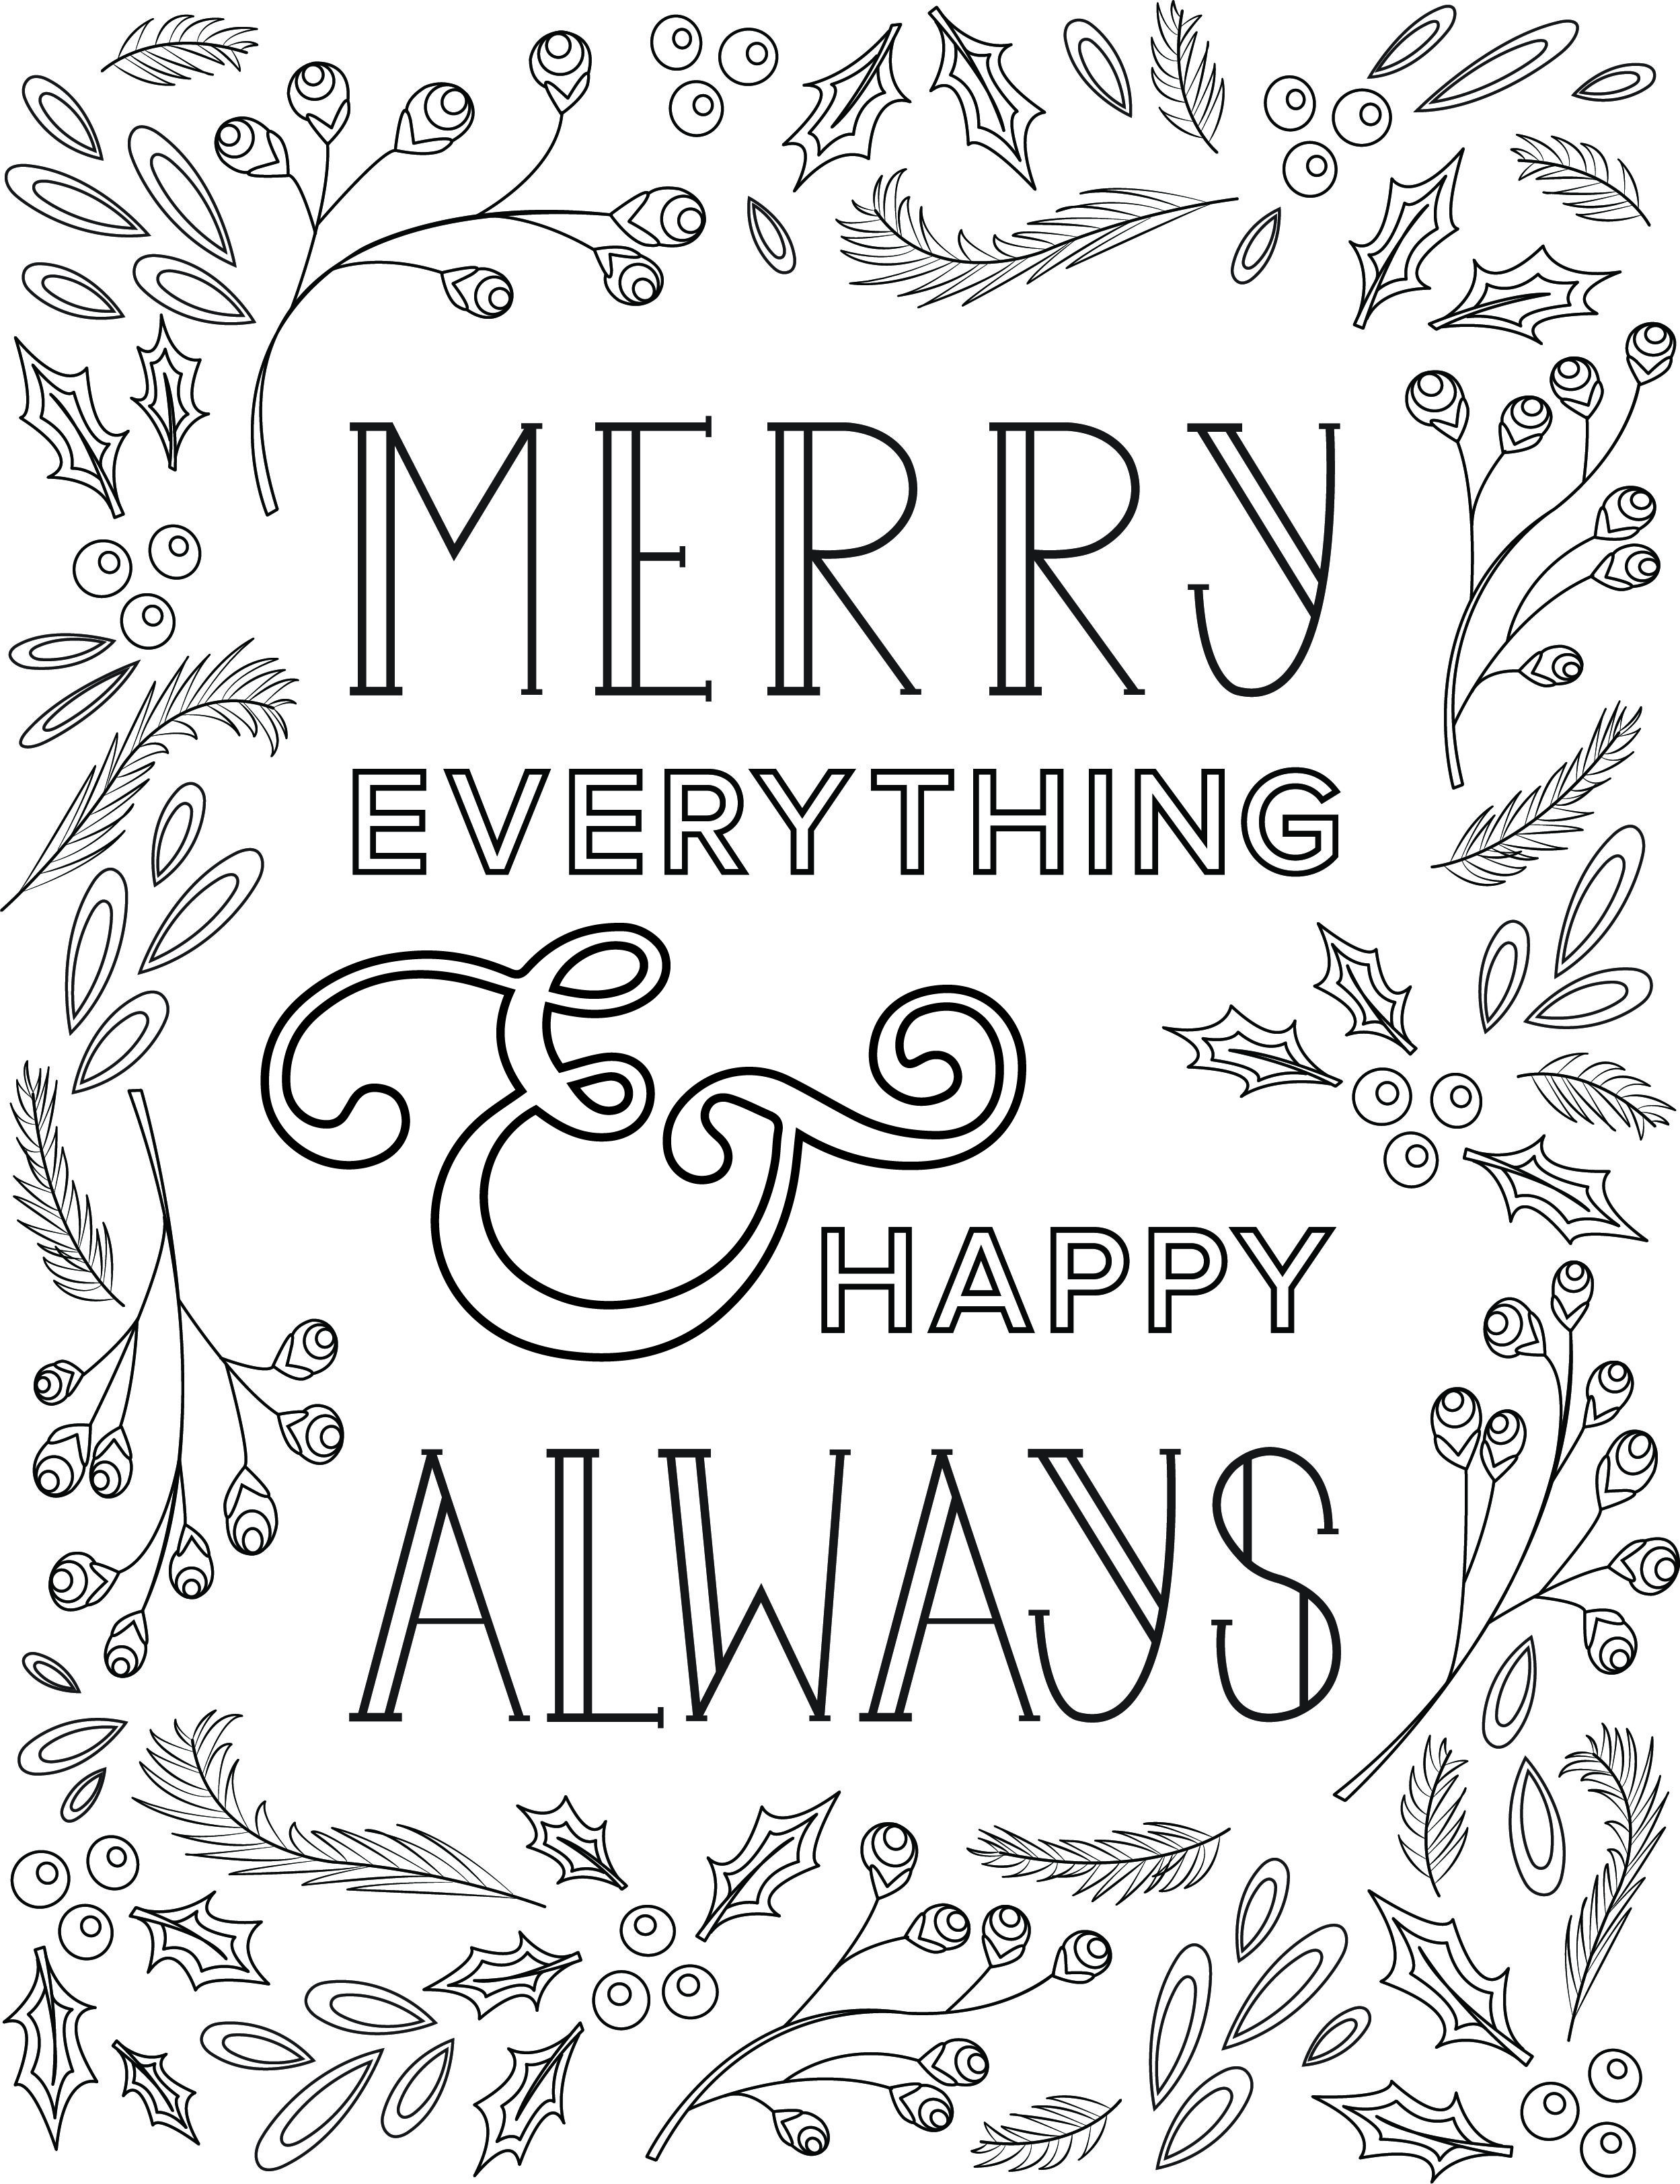 Happy Holidays From Our Thredup Family To Yours Merry Happy Christmas Fun Happy